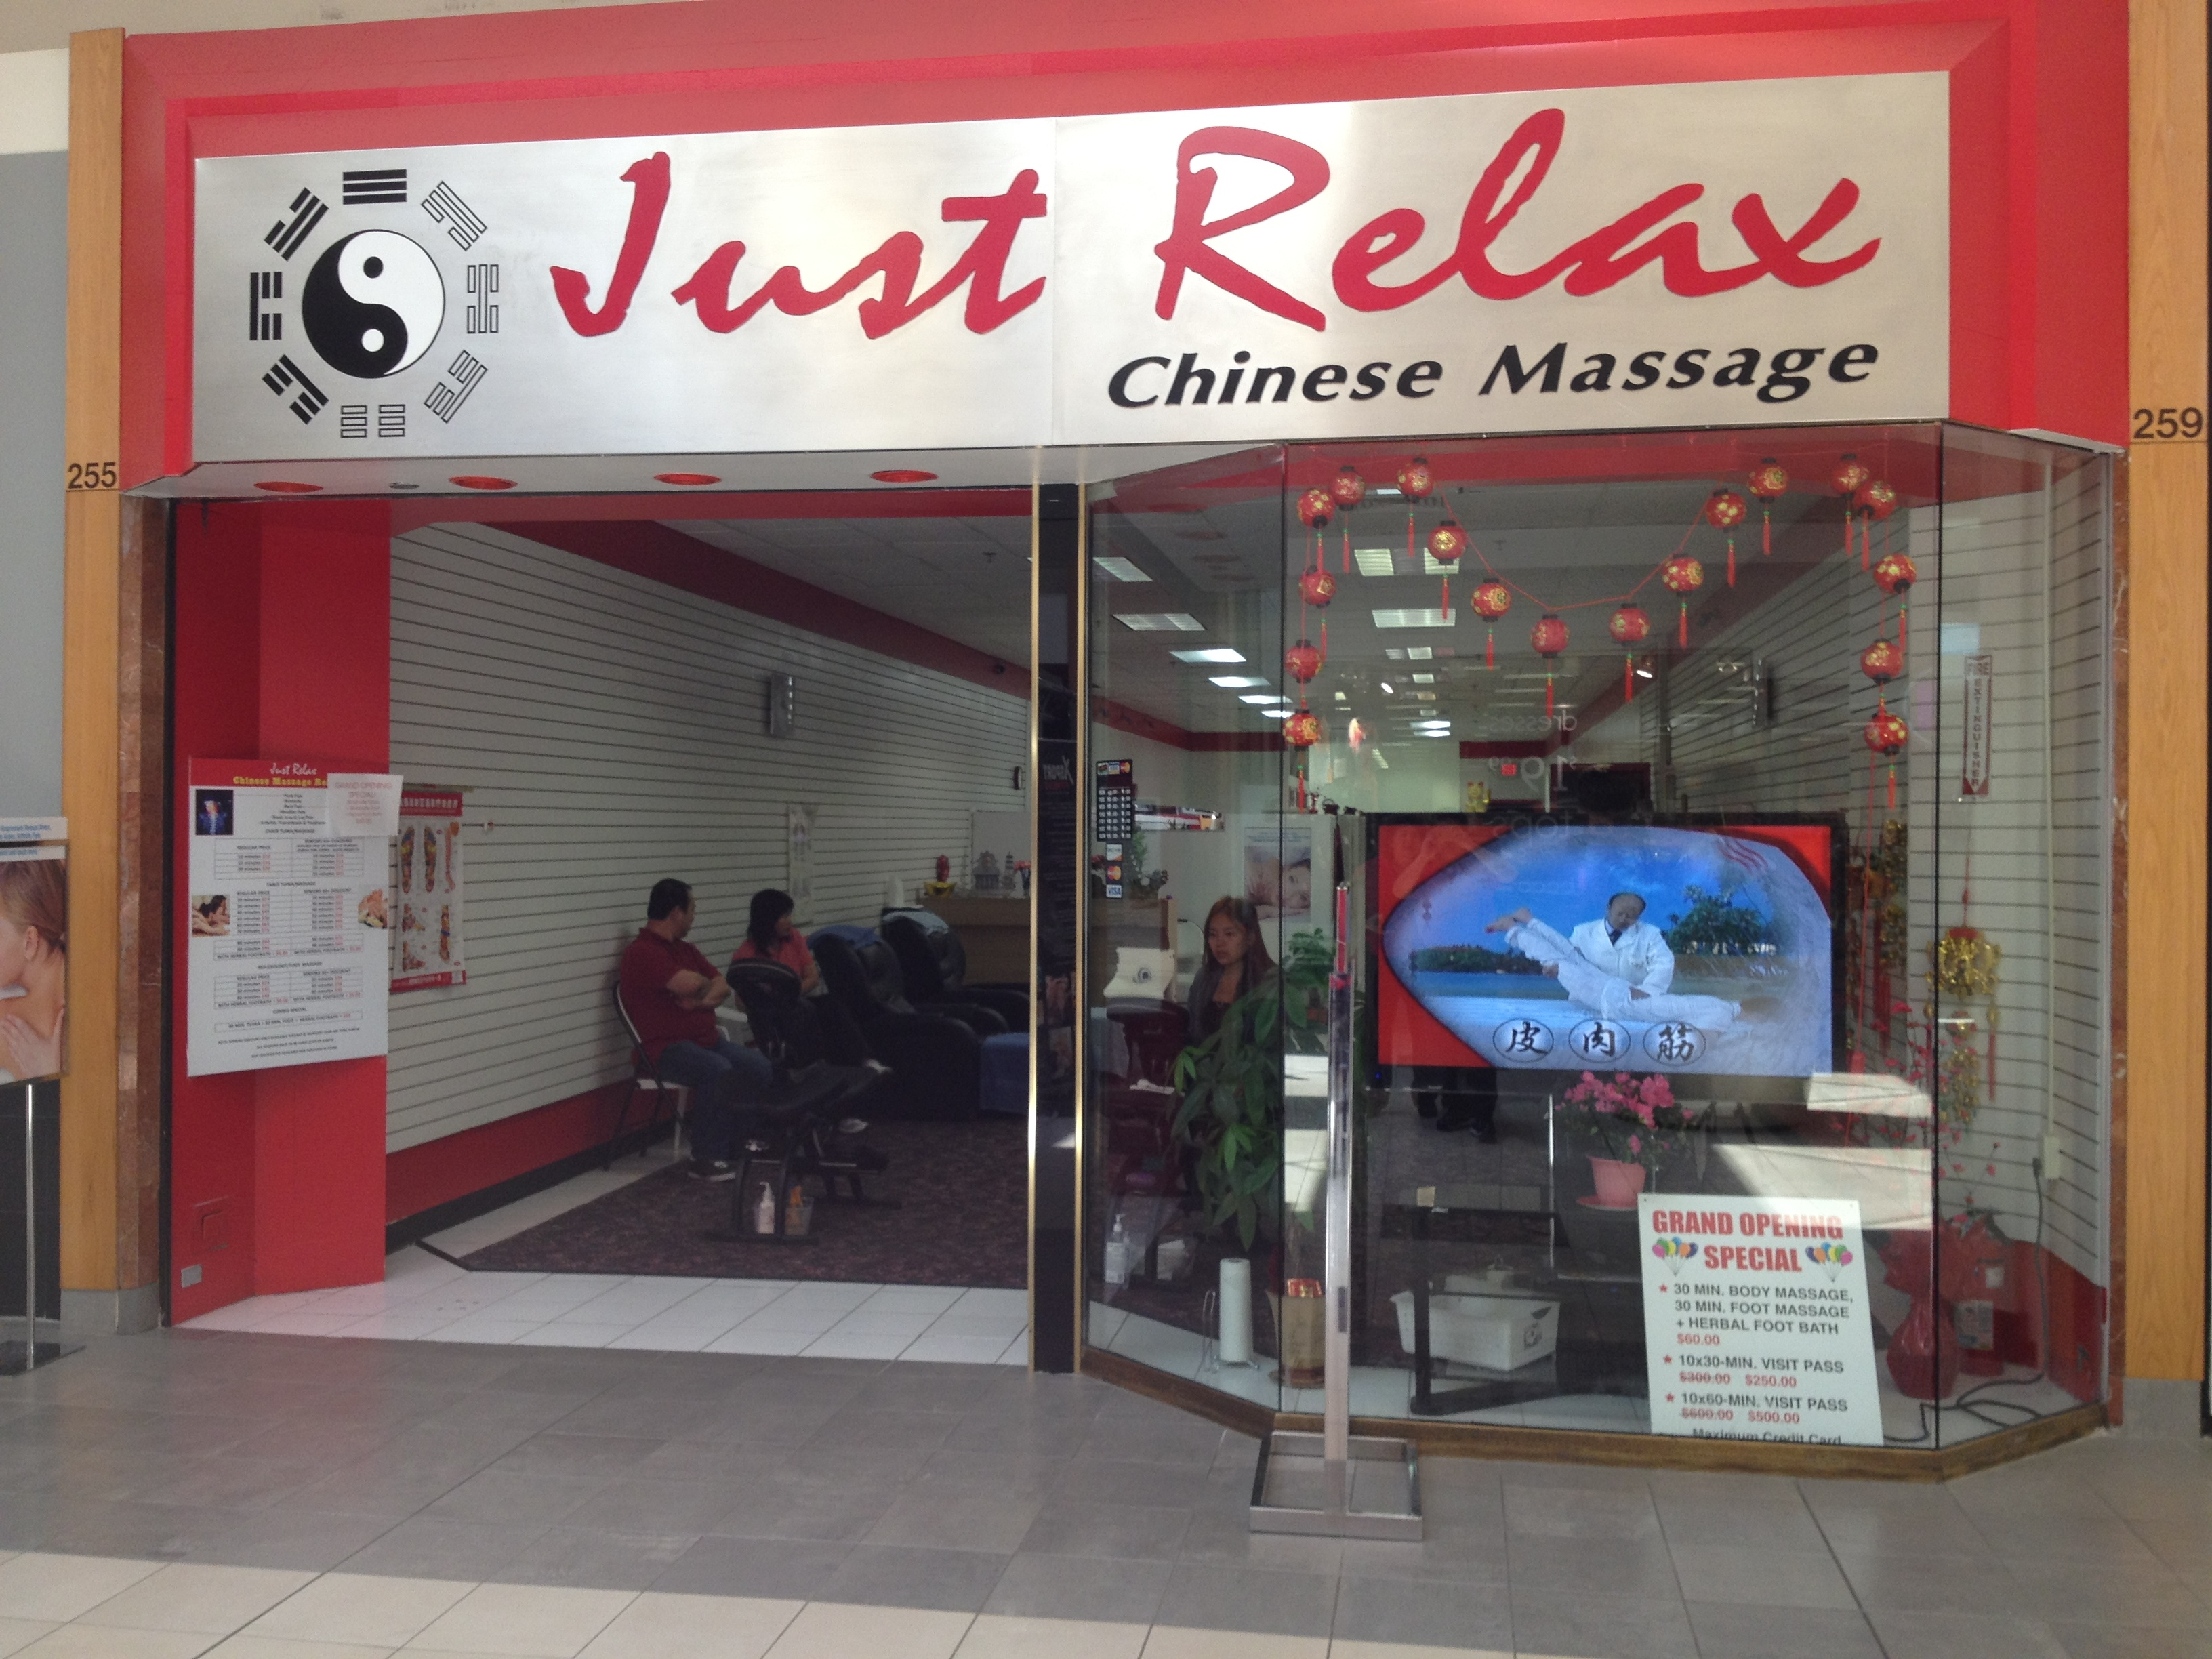 Just Relax Chinese Massage